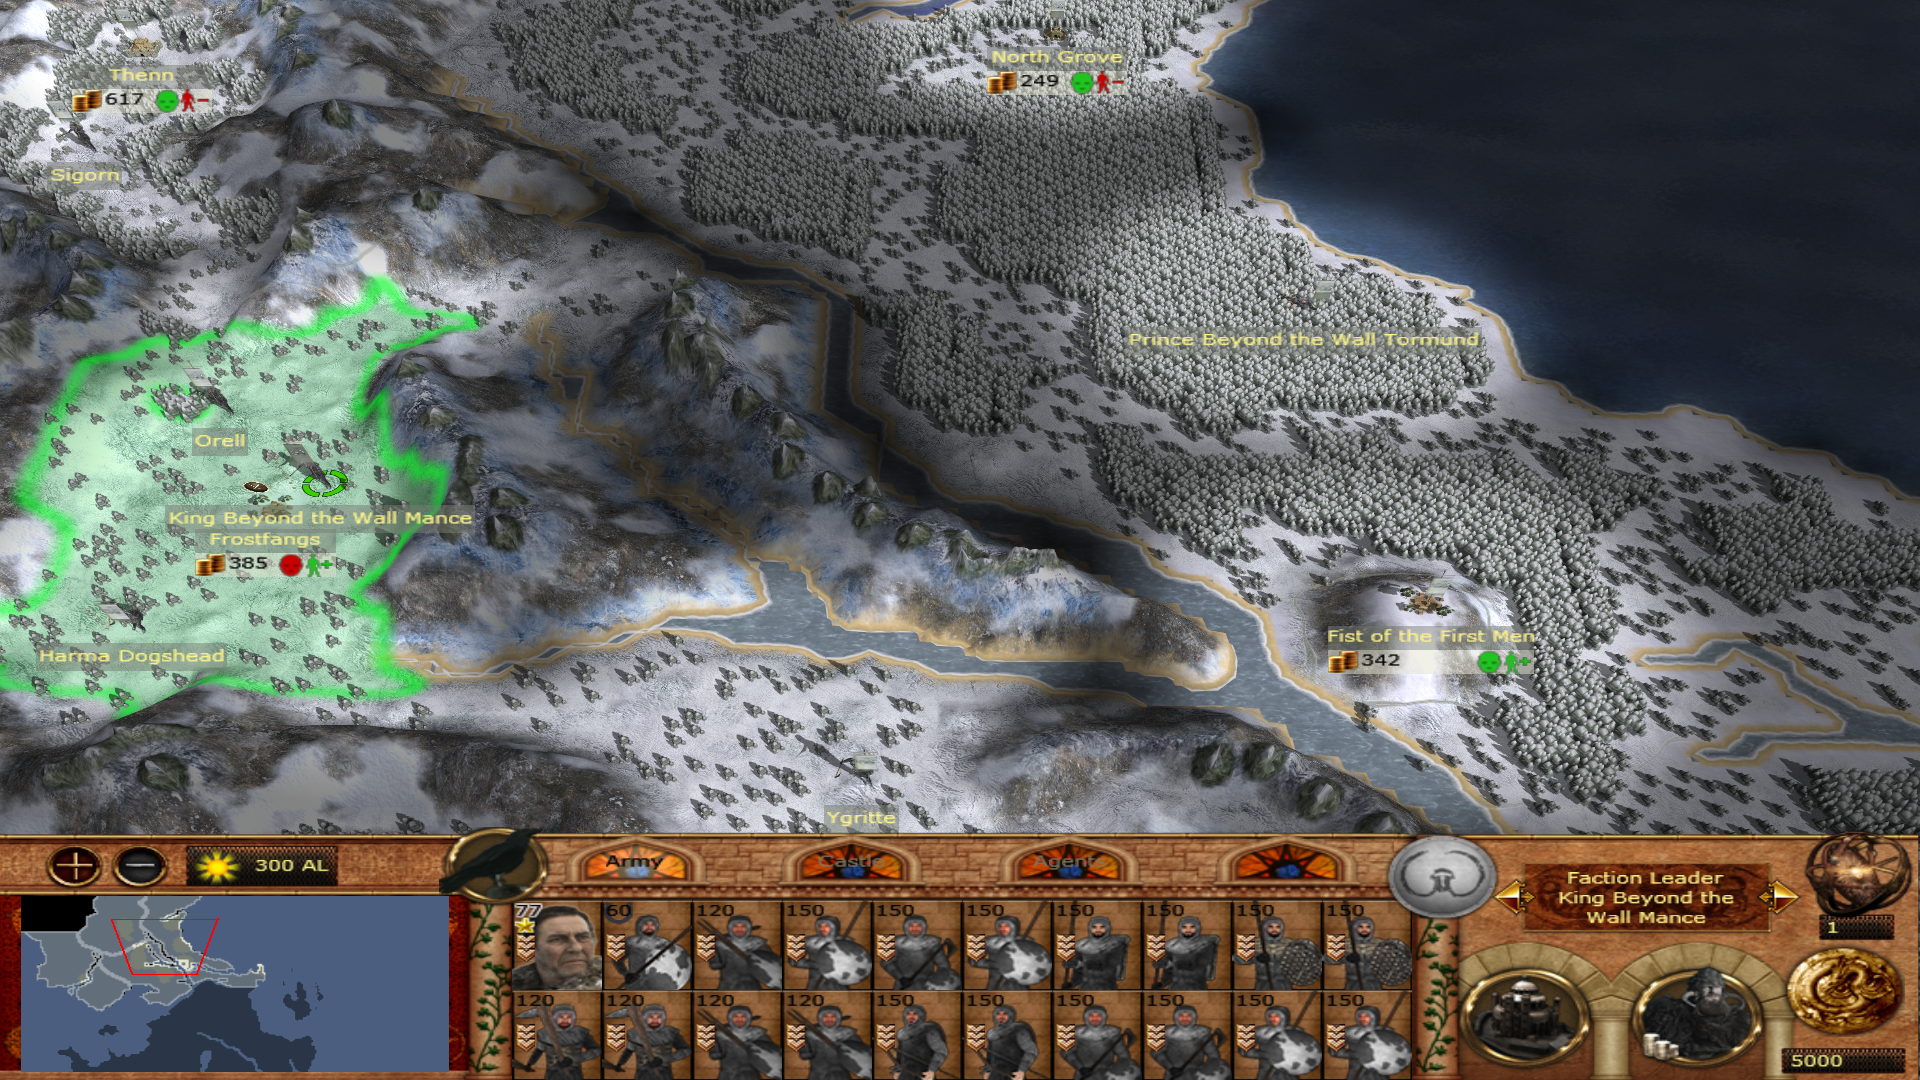 Wildlings strat-models added to the campaign!